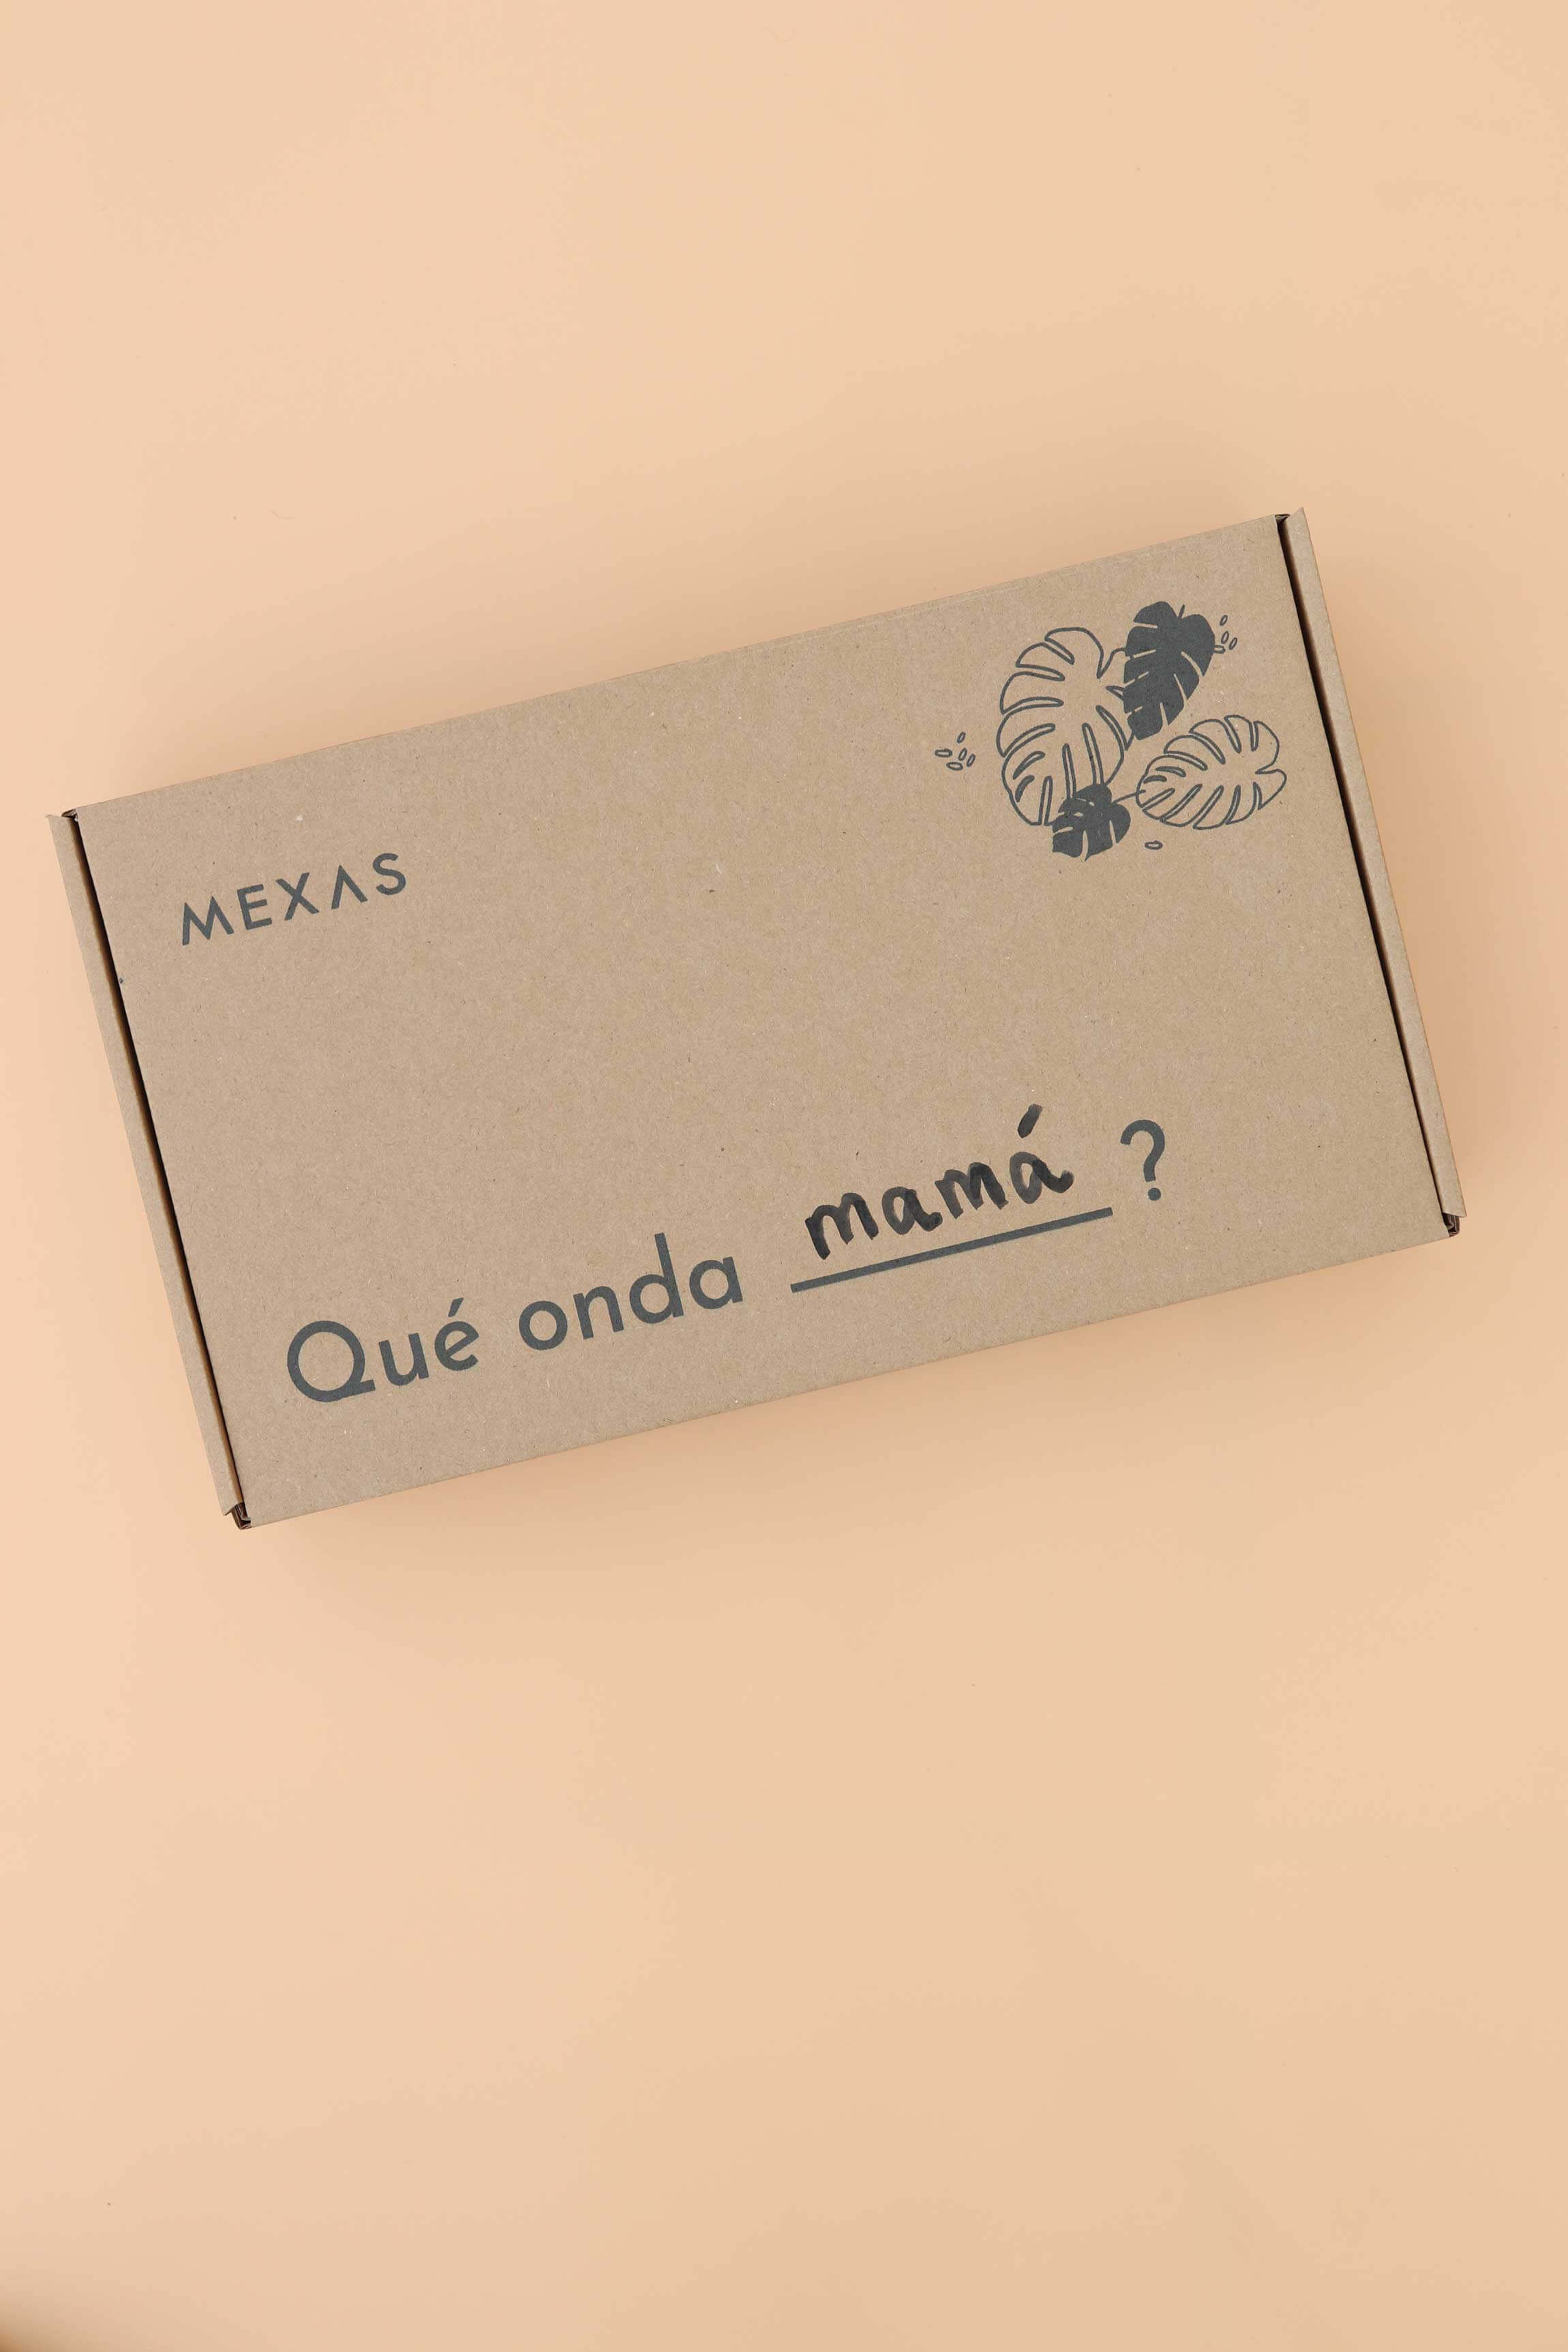 packaging ecológico de la marca Mexas